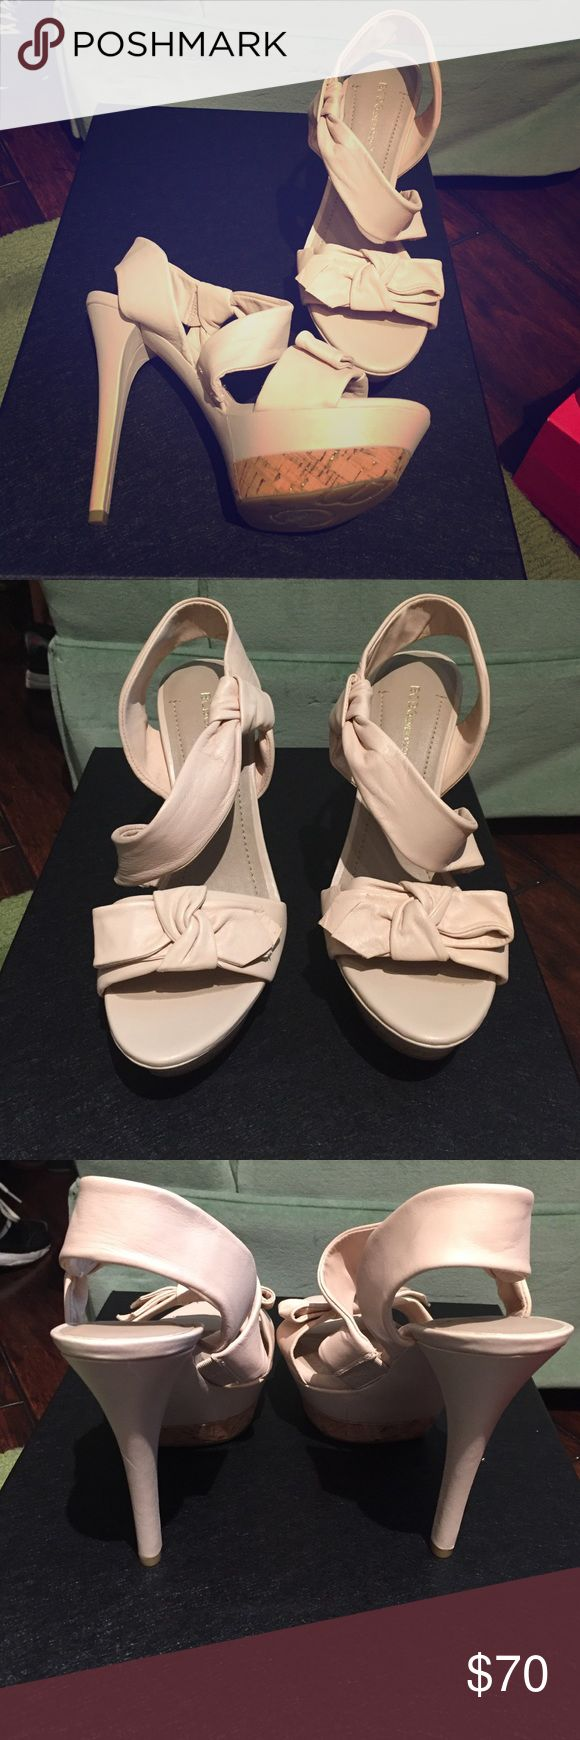 BCBG heels Blush BCBG leather heels, brand new never been worn. NWOT BCBG Shoes Heels